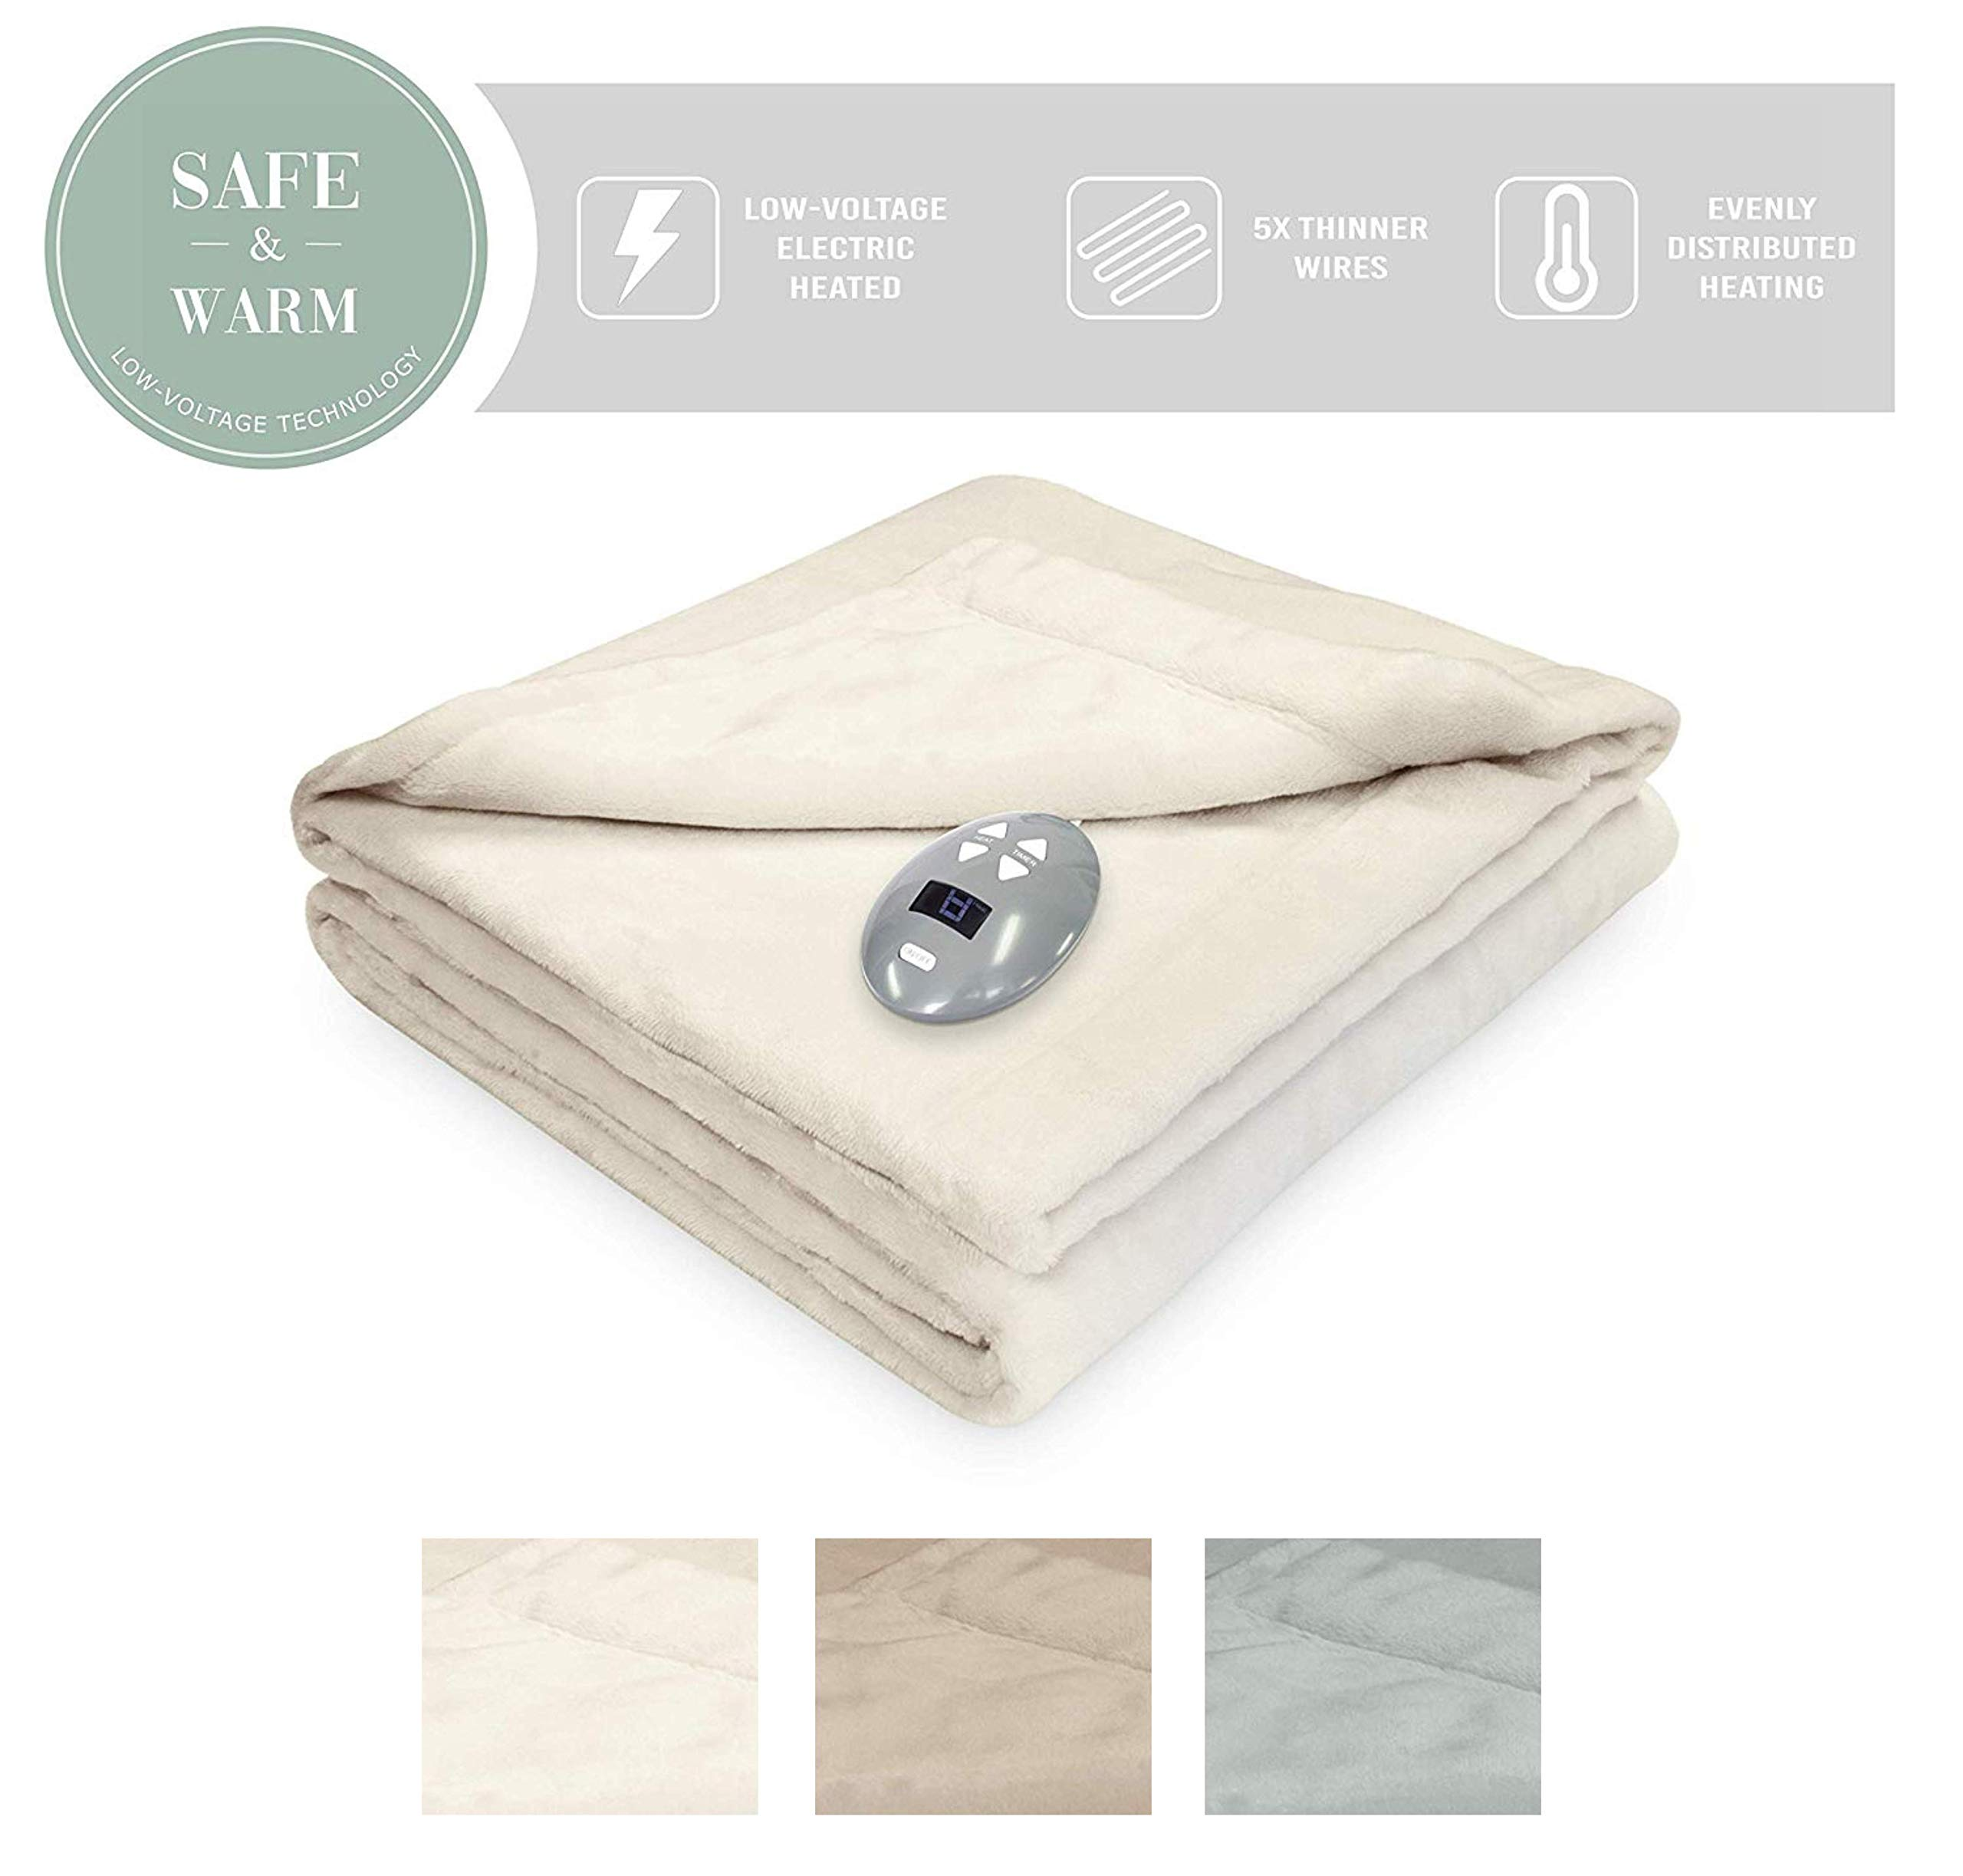 SoftHeat by Perfect Fit | Luxurious Velvet Plush Heated Electric Warming Blanket with Safe & Warm Low-Voltage Technology (Twin, Natural Vanilla)